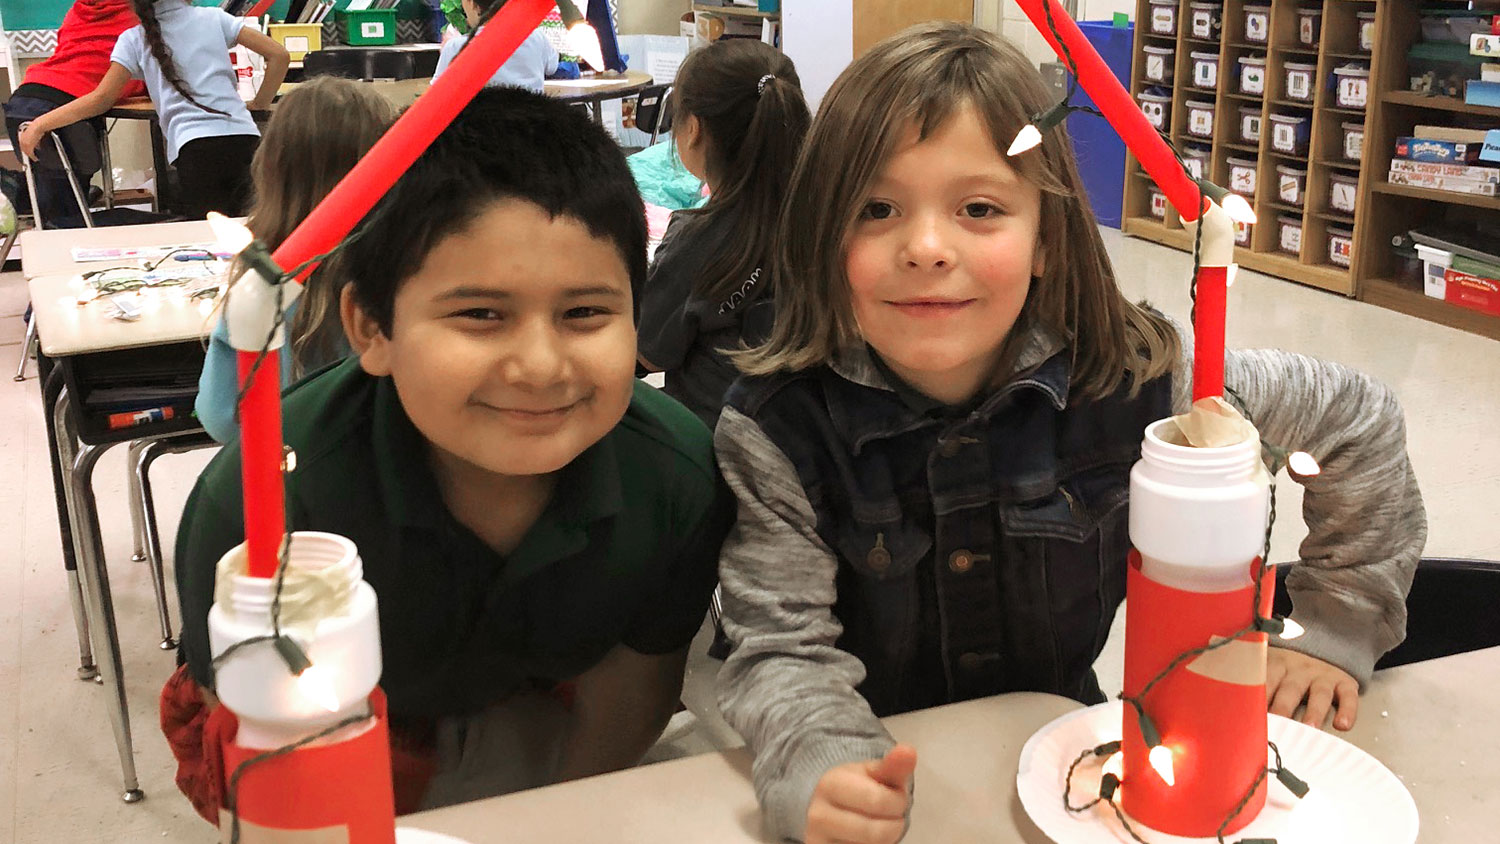 Two elementary school students working on a STEM project